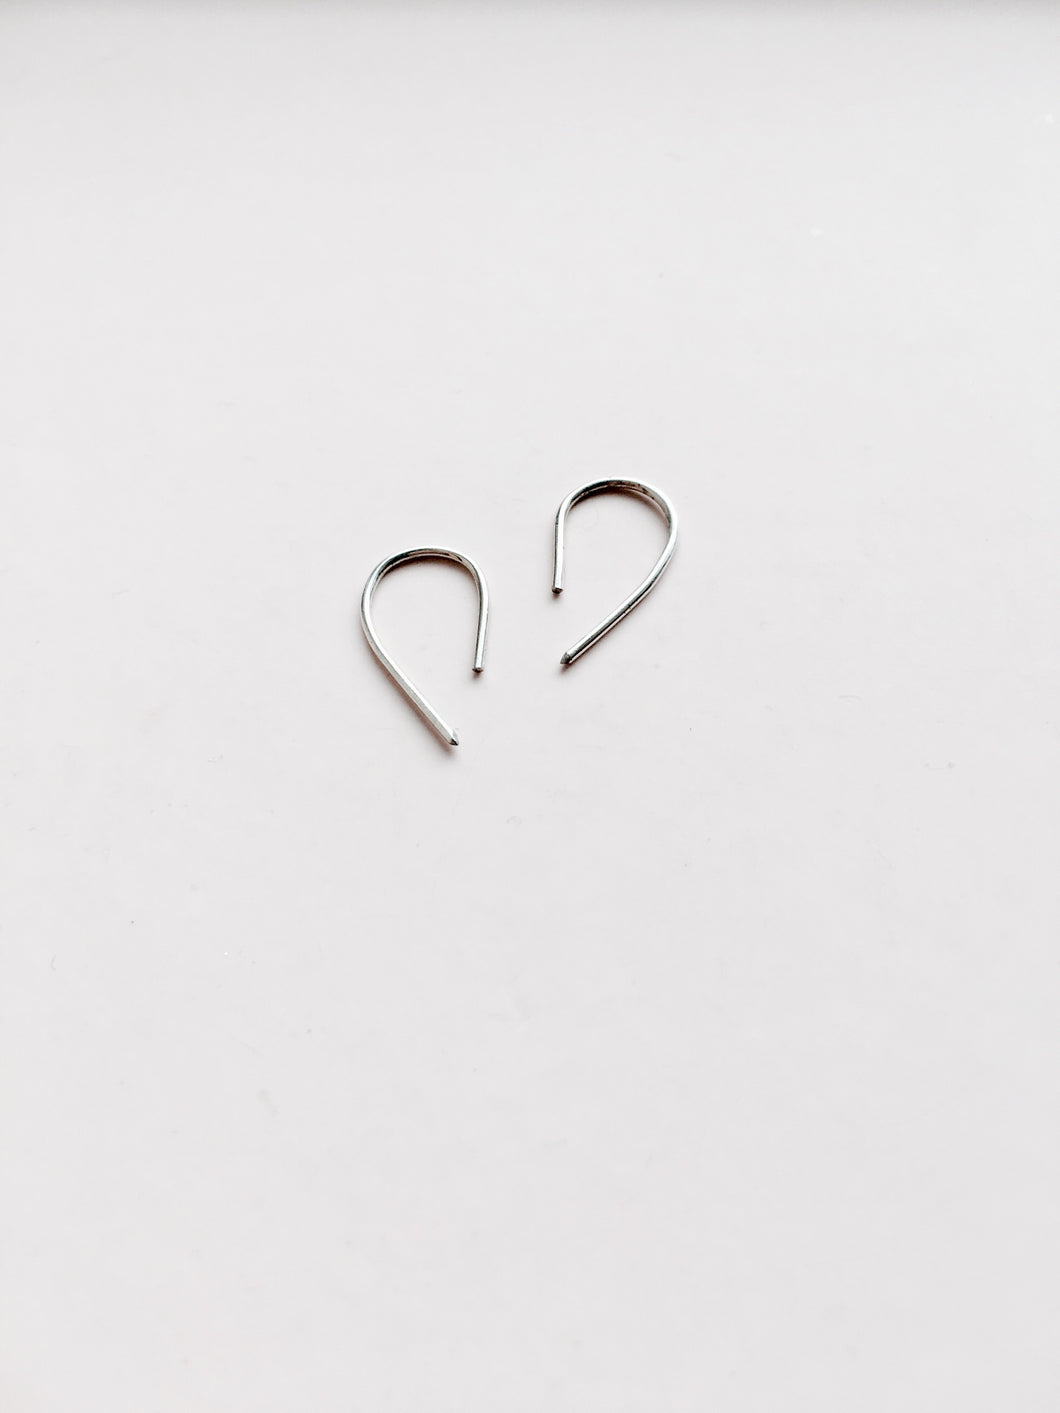 truelove threader earrings in sterling silver - andJules Jewelry